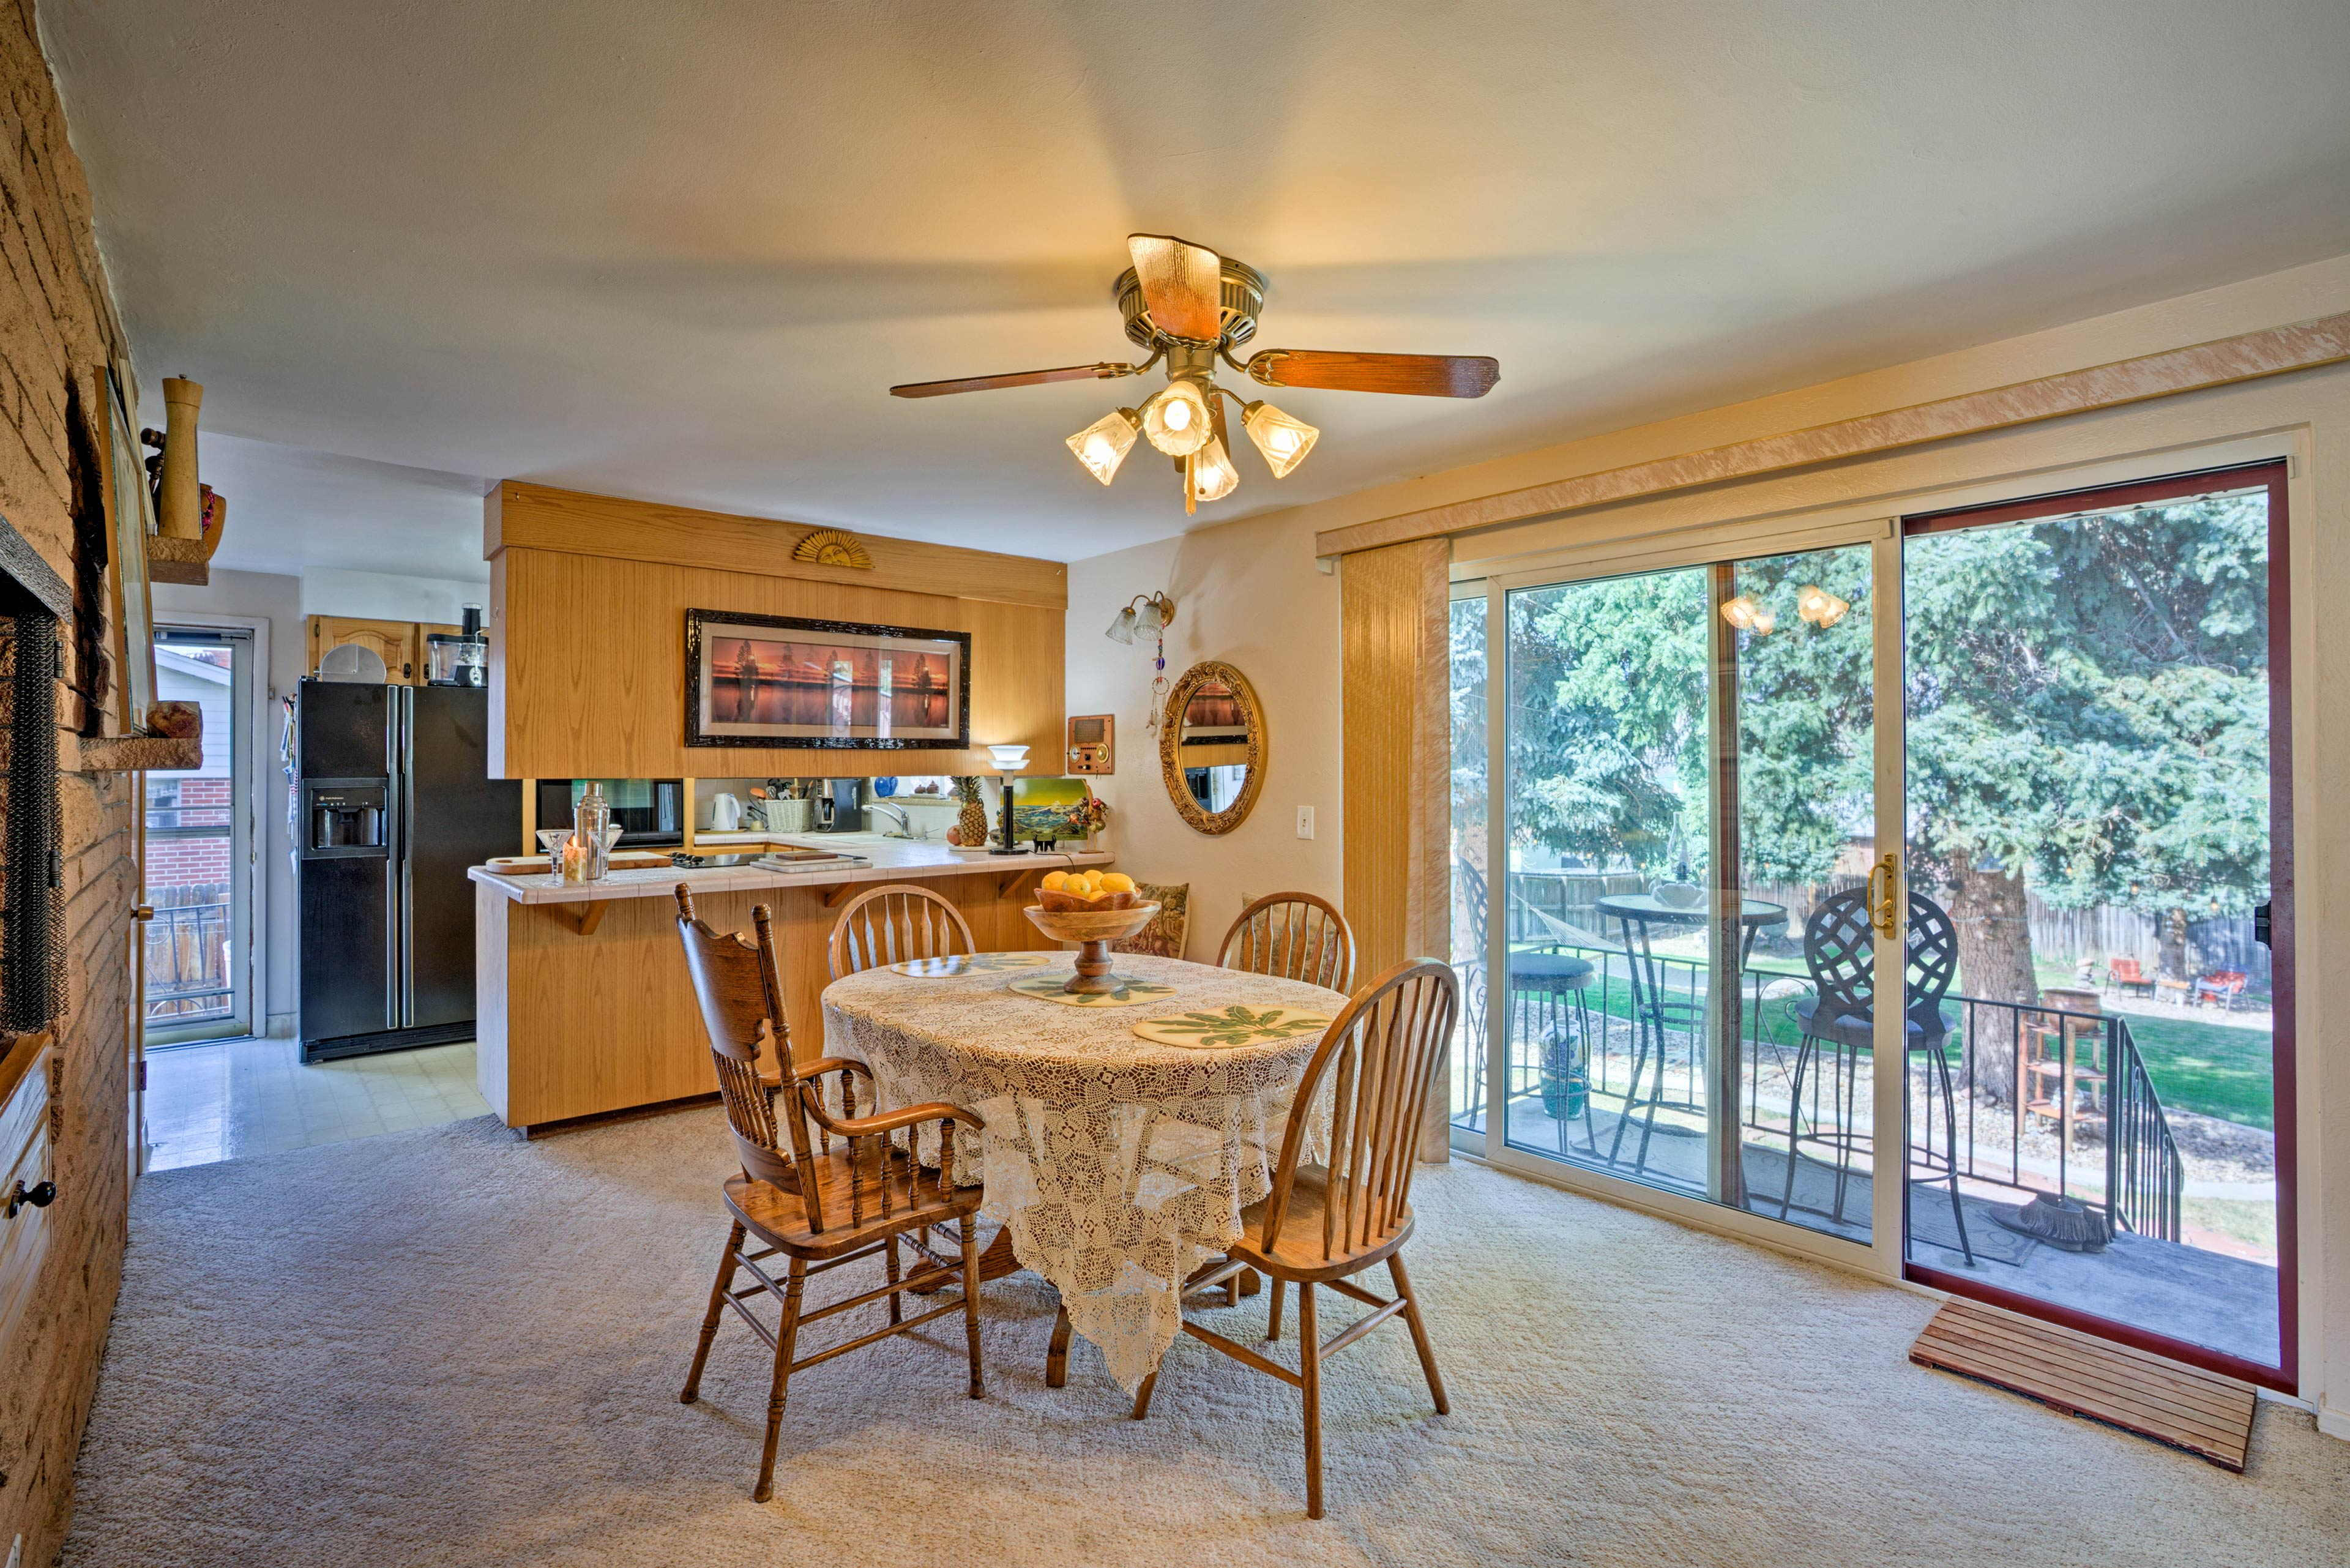 Enjoy a home-cooked meal on this dining space.